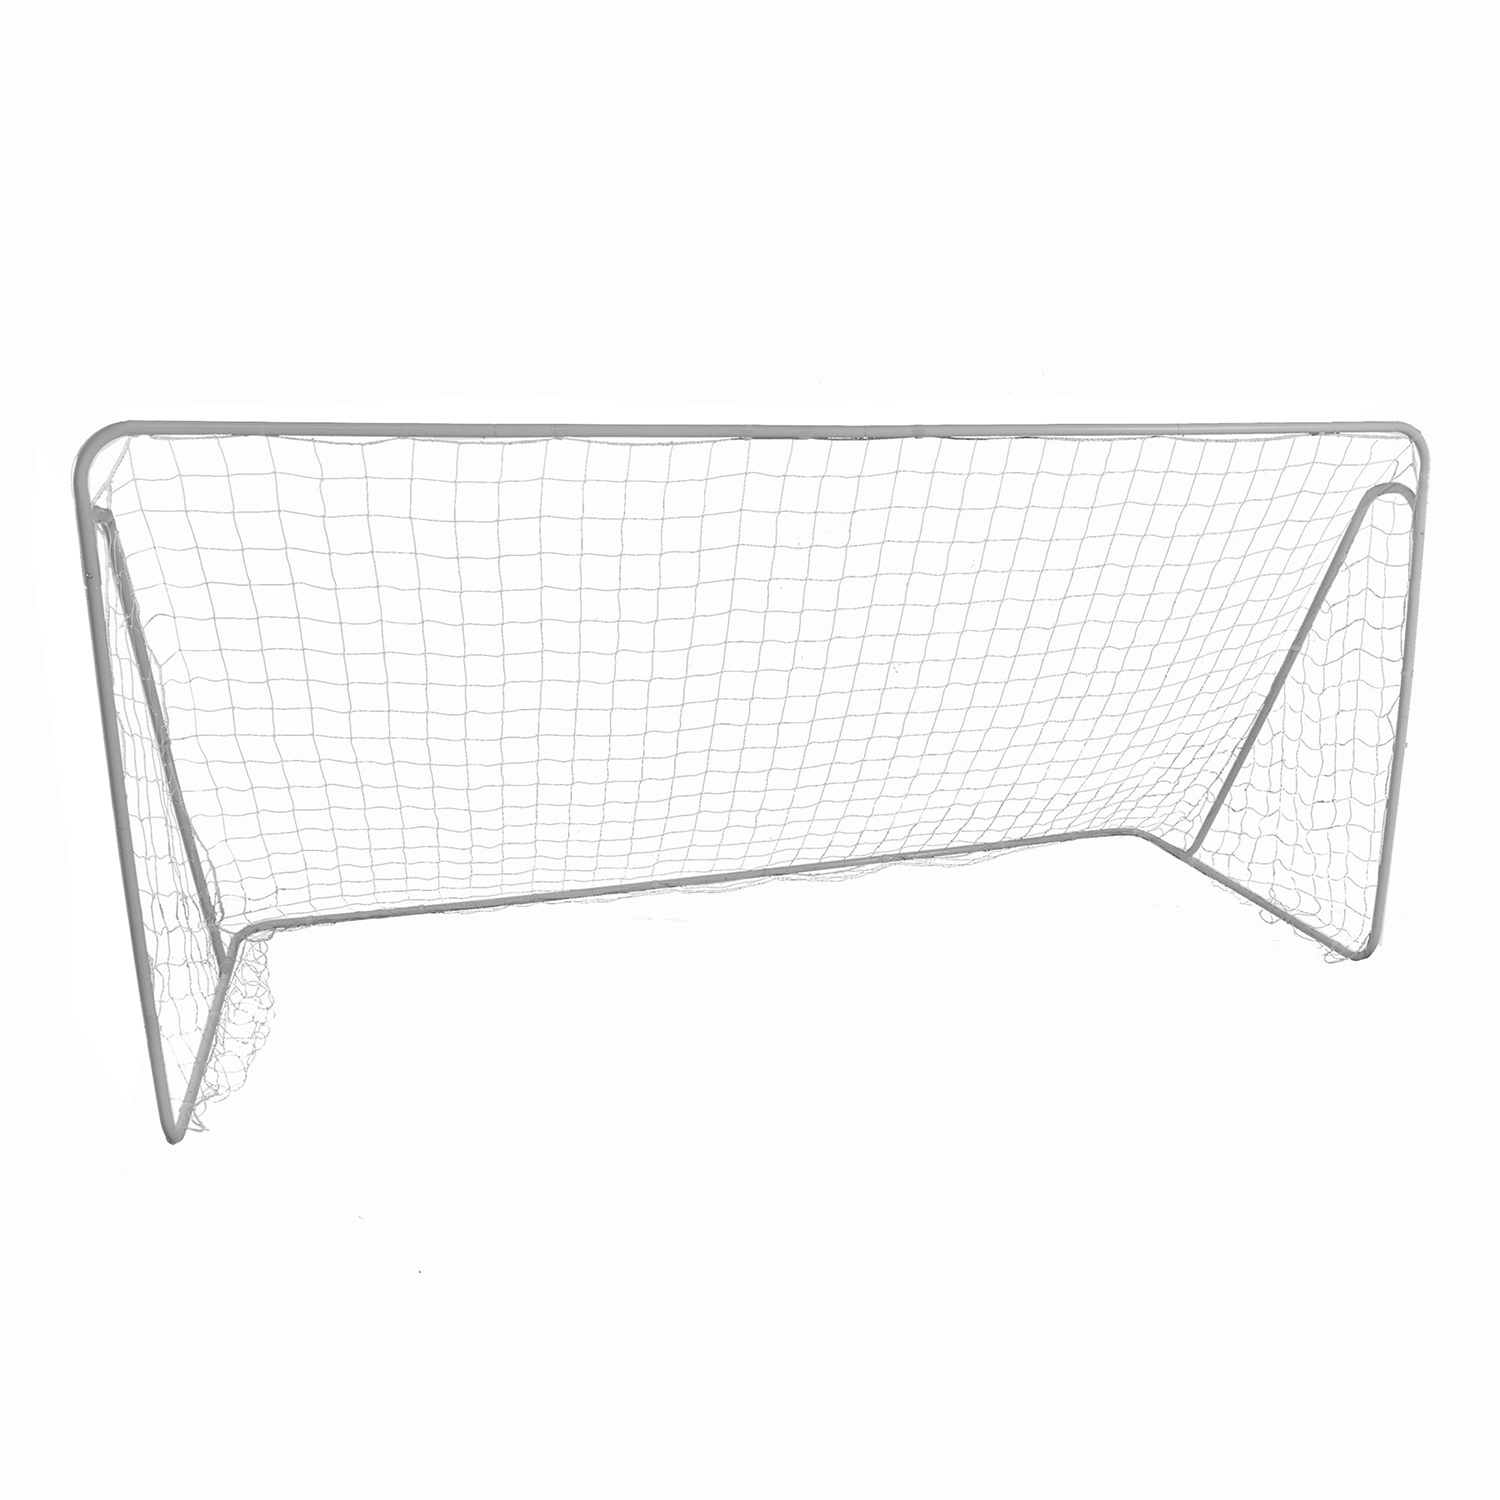 Adjustable Training Goal Soccer Practice 12' x 6' Futbol Cancha Porteria by Clevr